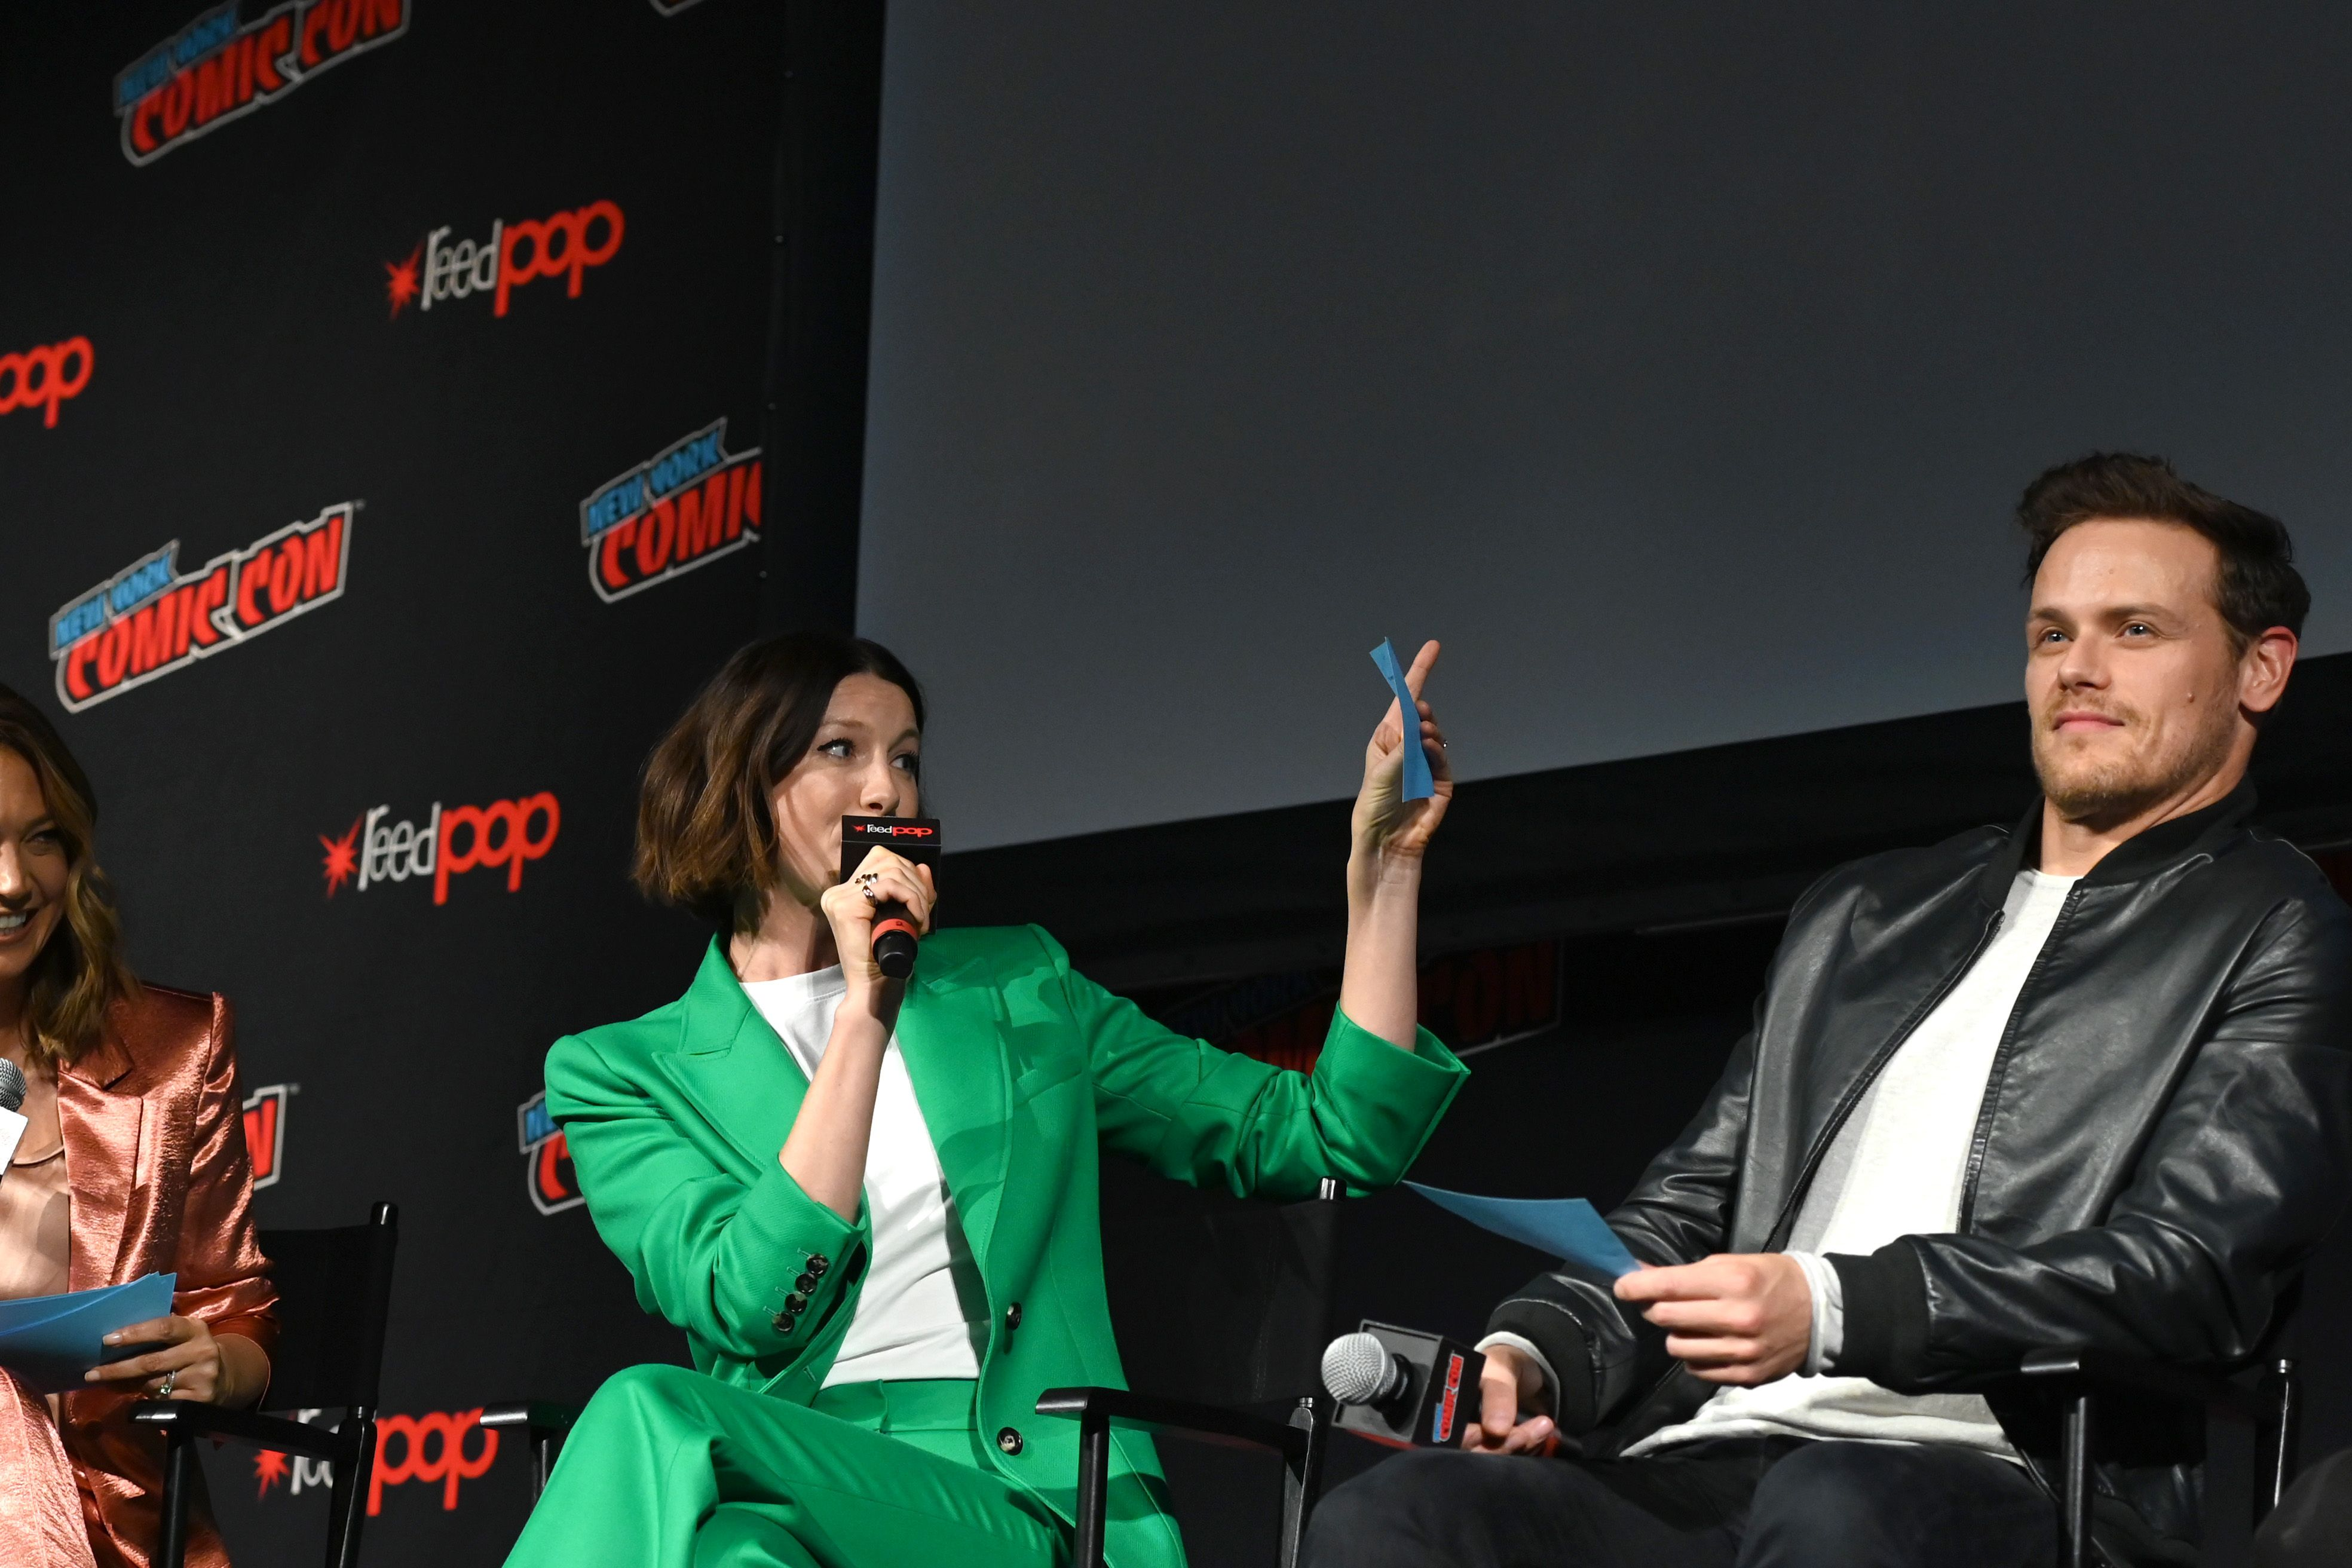 Outlander's New York Comic Con Panel: The Five Best Moments